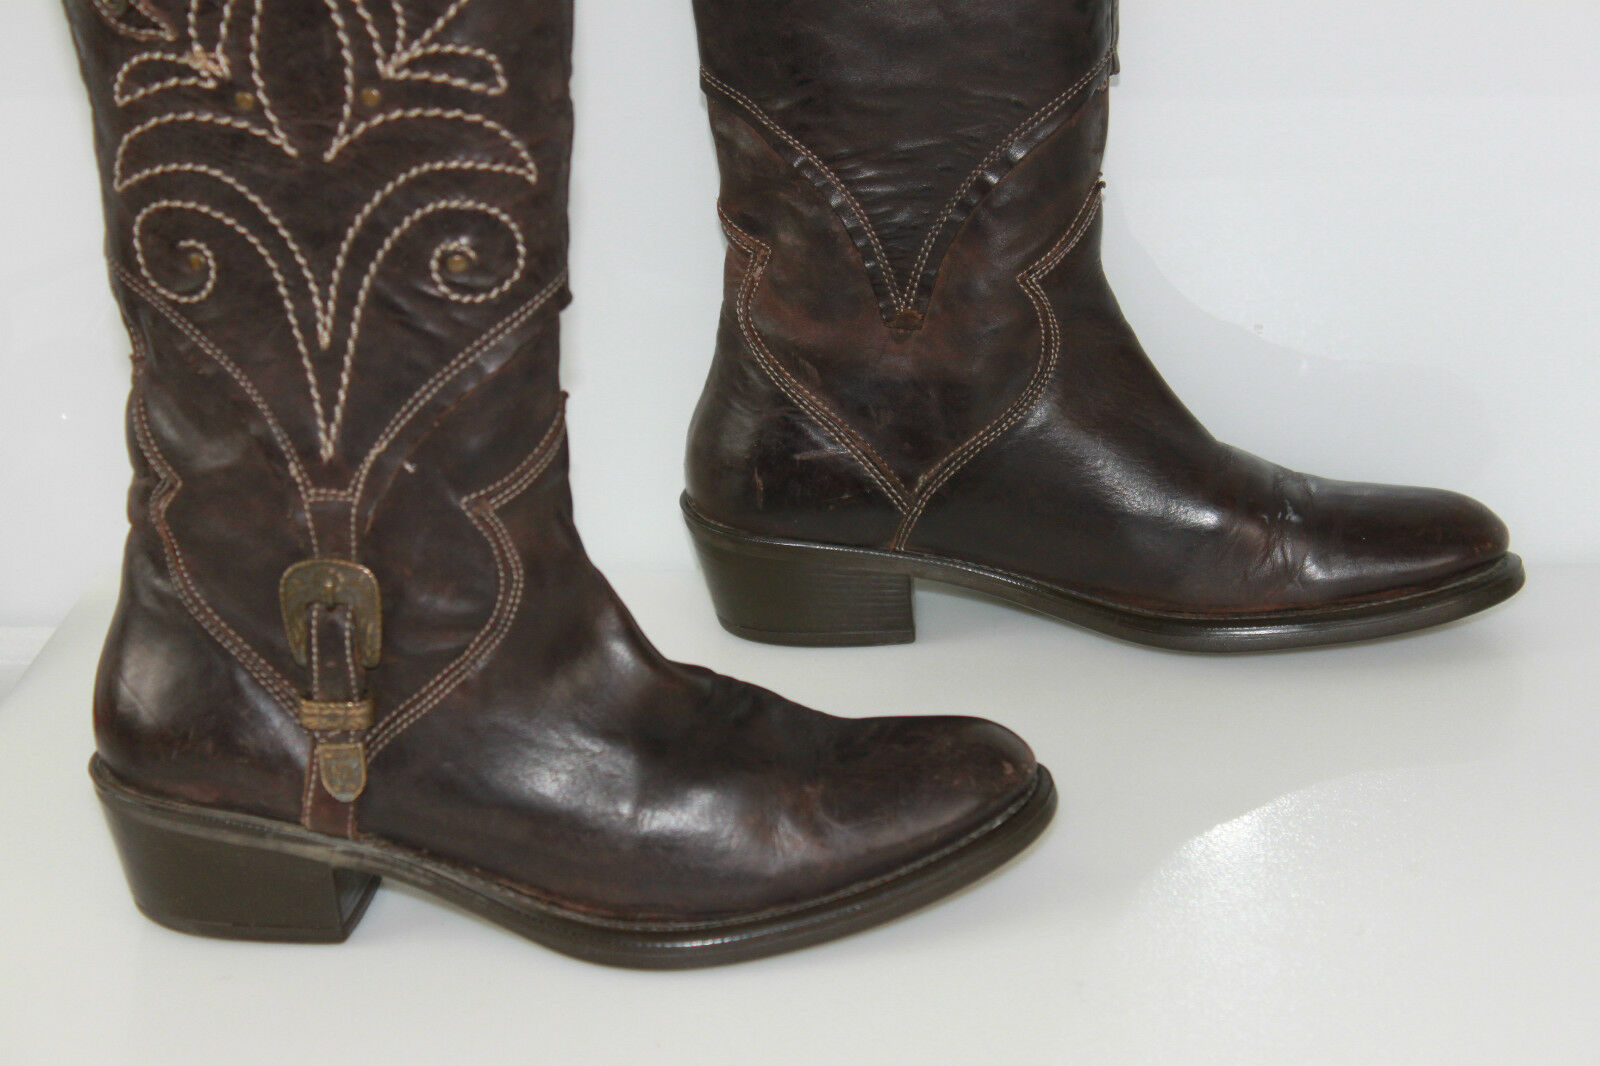 Riding Boots TREMP Leather Embroidered Dark Brown T 36 BE